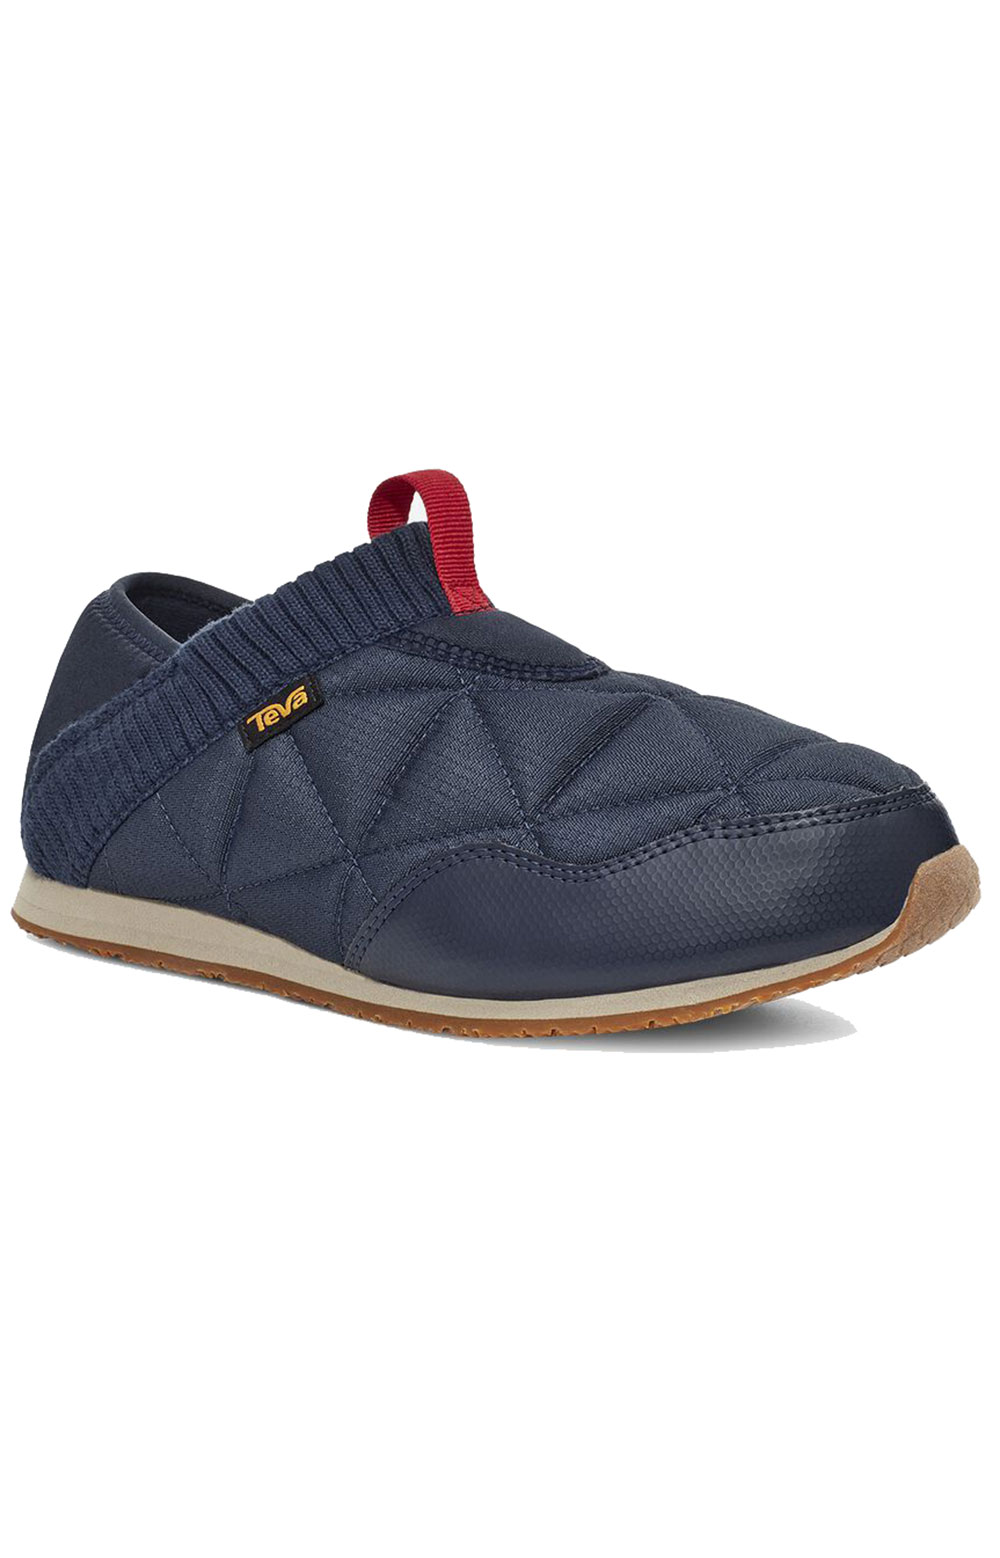 (1125472) ReEMBER Moccasins - Total Eclipse  2